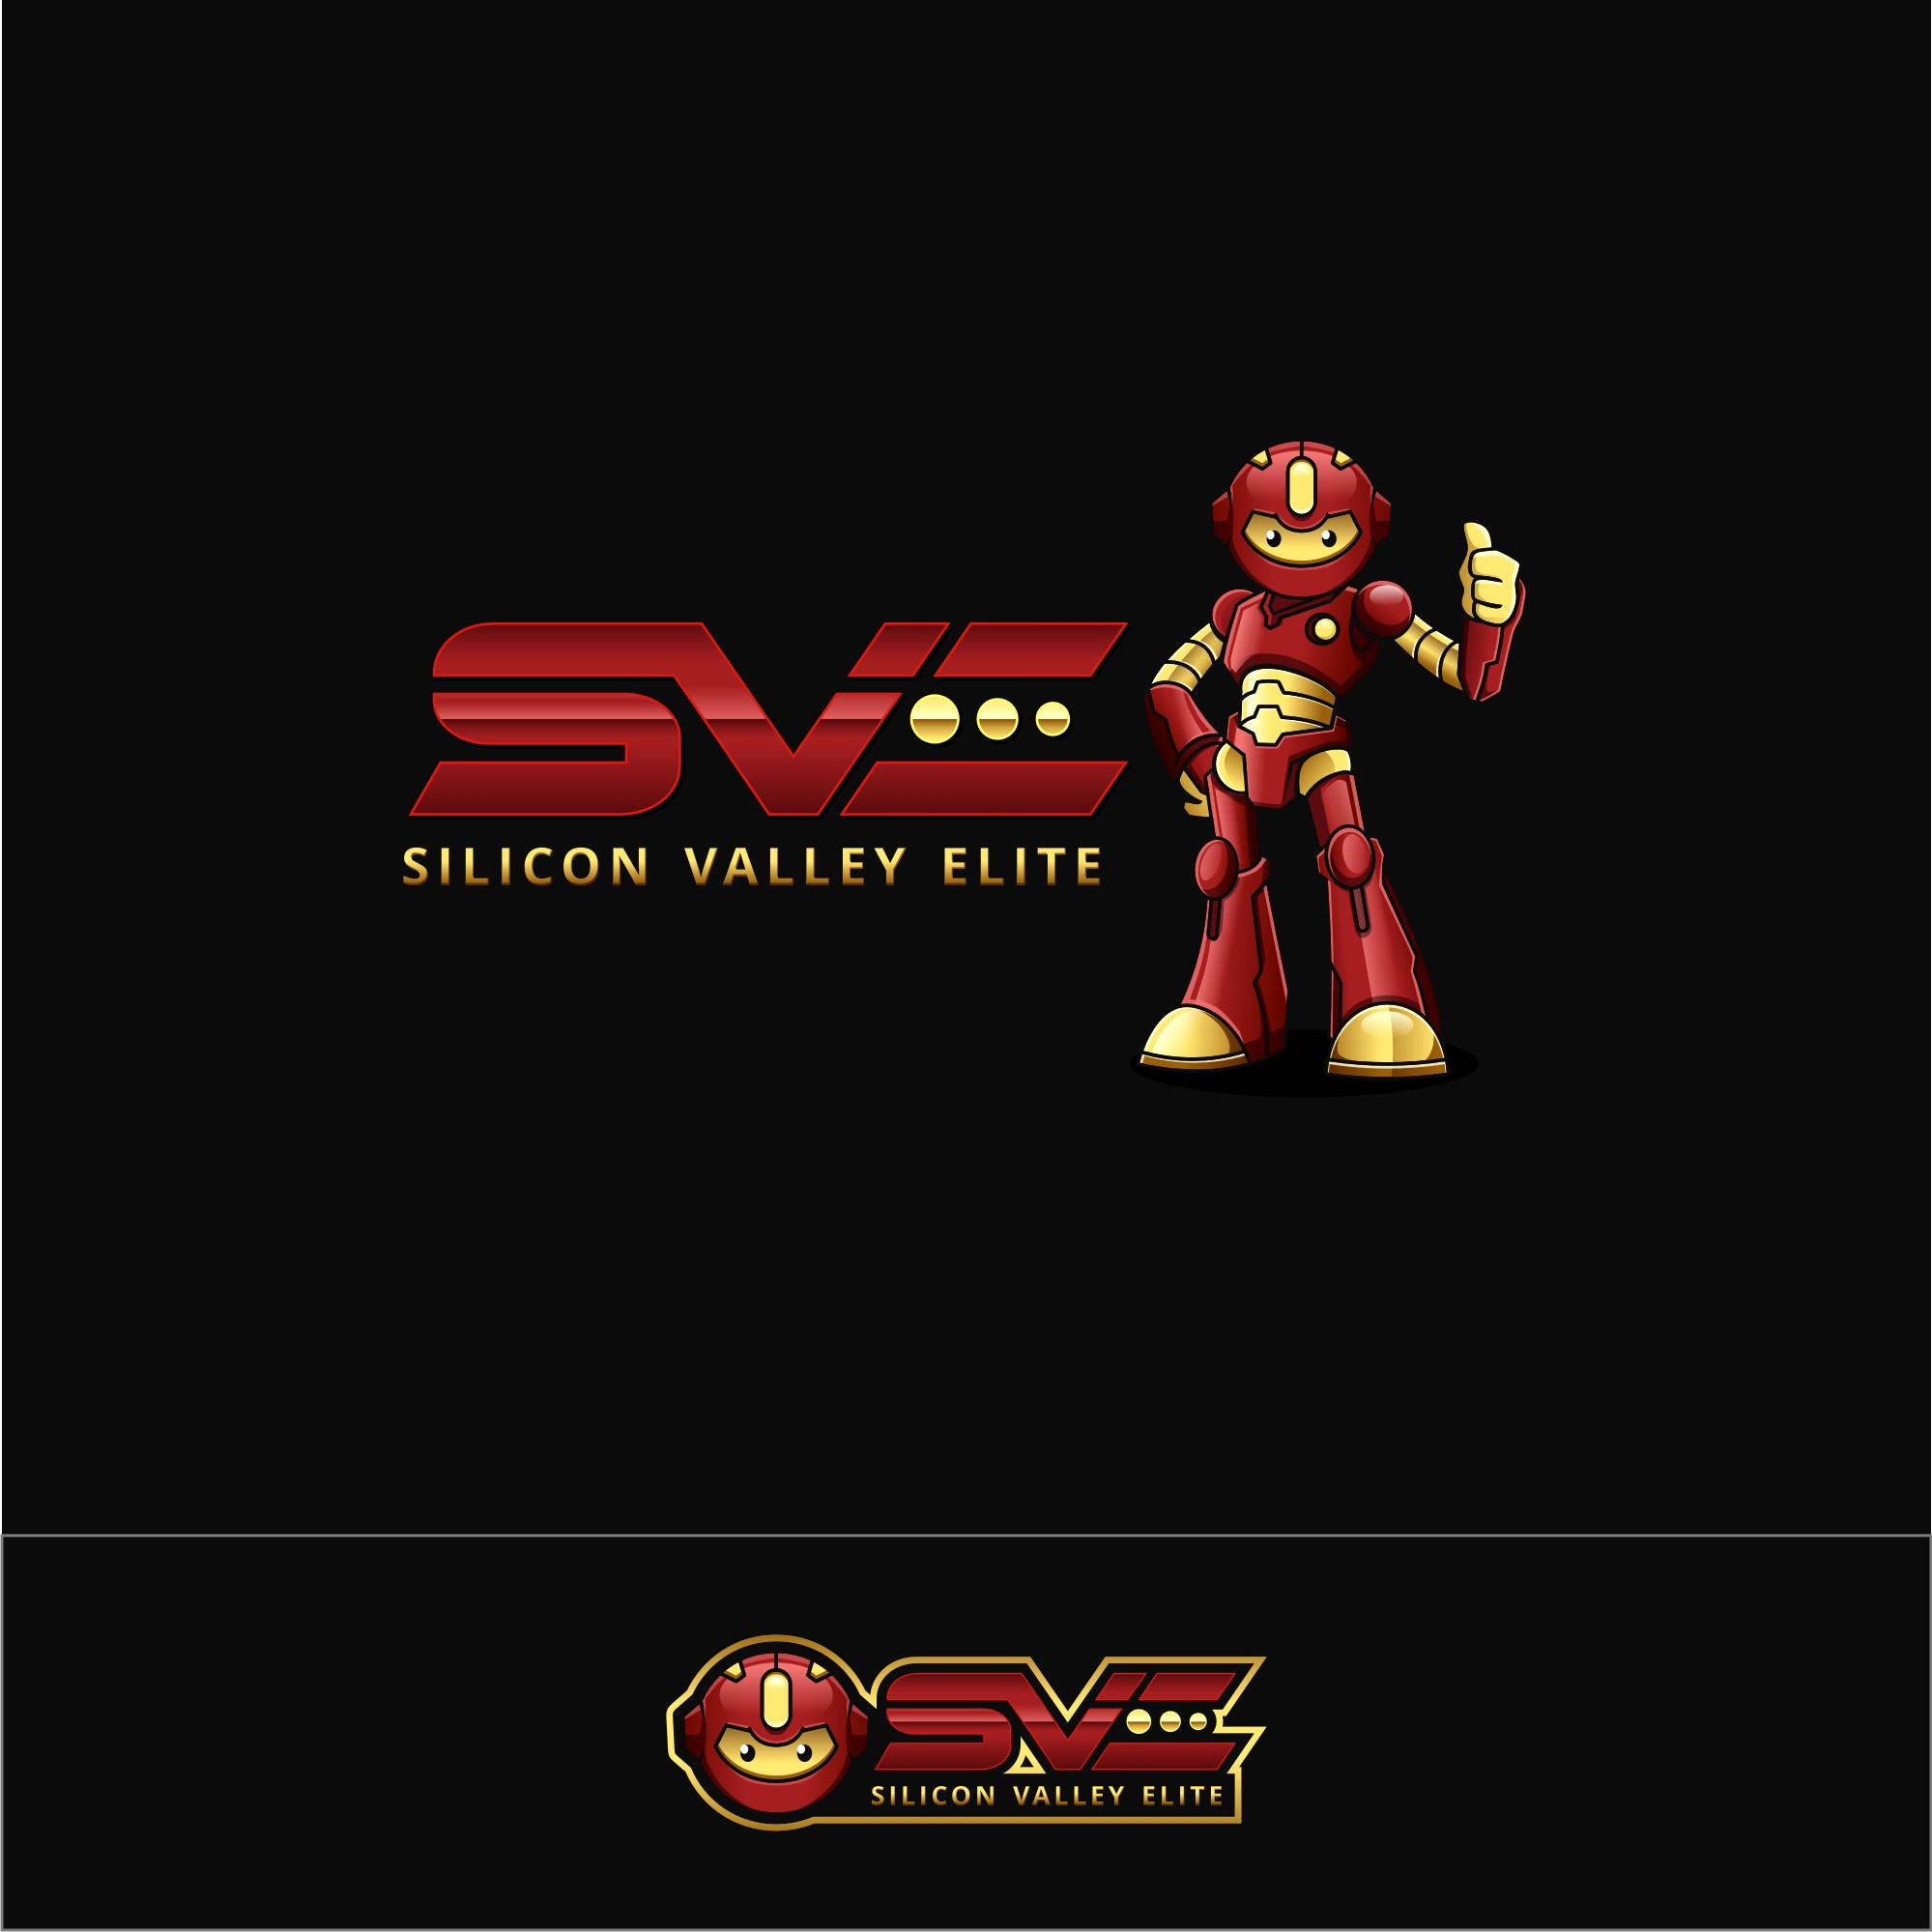 Competitive Cheerleading Gym in the Silicon Valley needs a intense Logo with a robot similar to Mega Man!